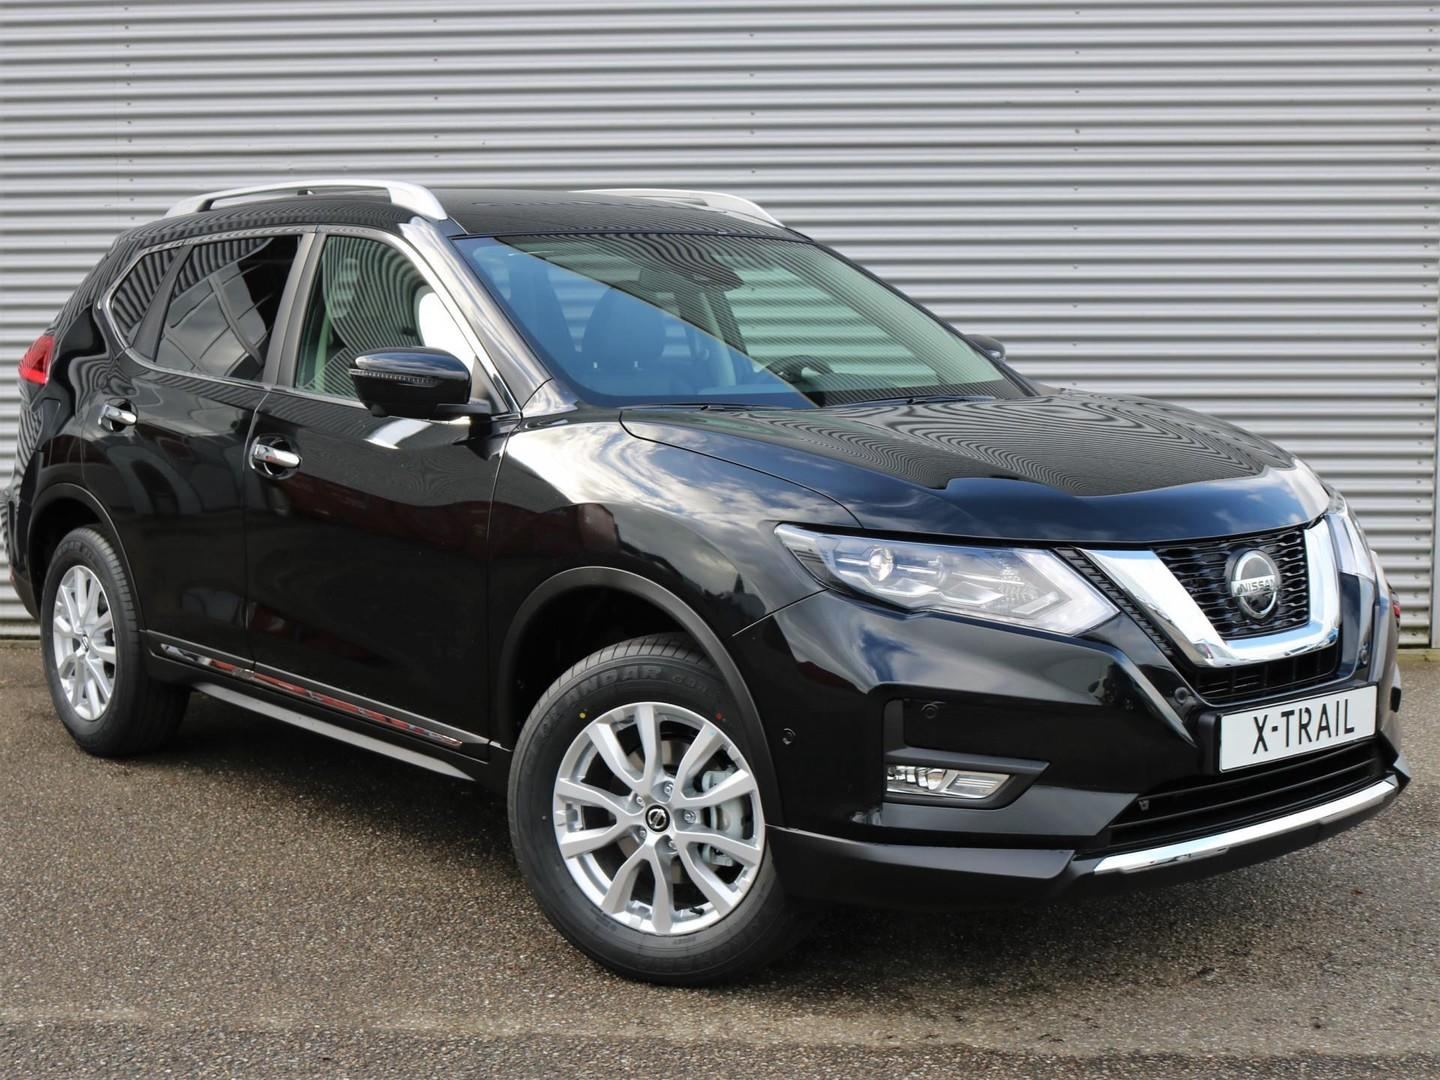 Nissan X-trail 1.3 dig-t business edition